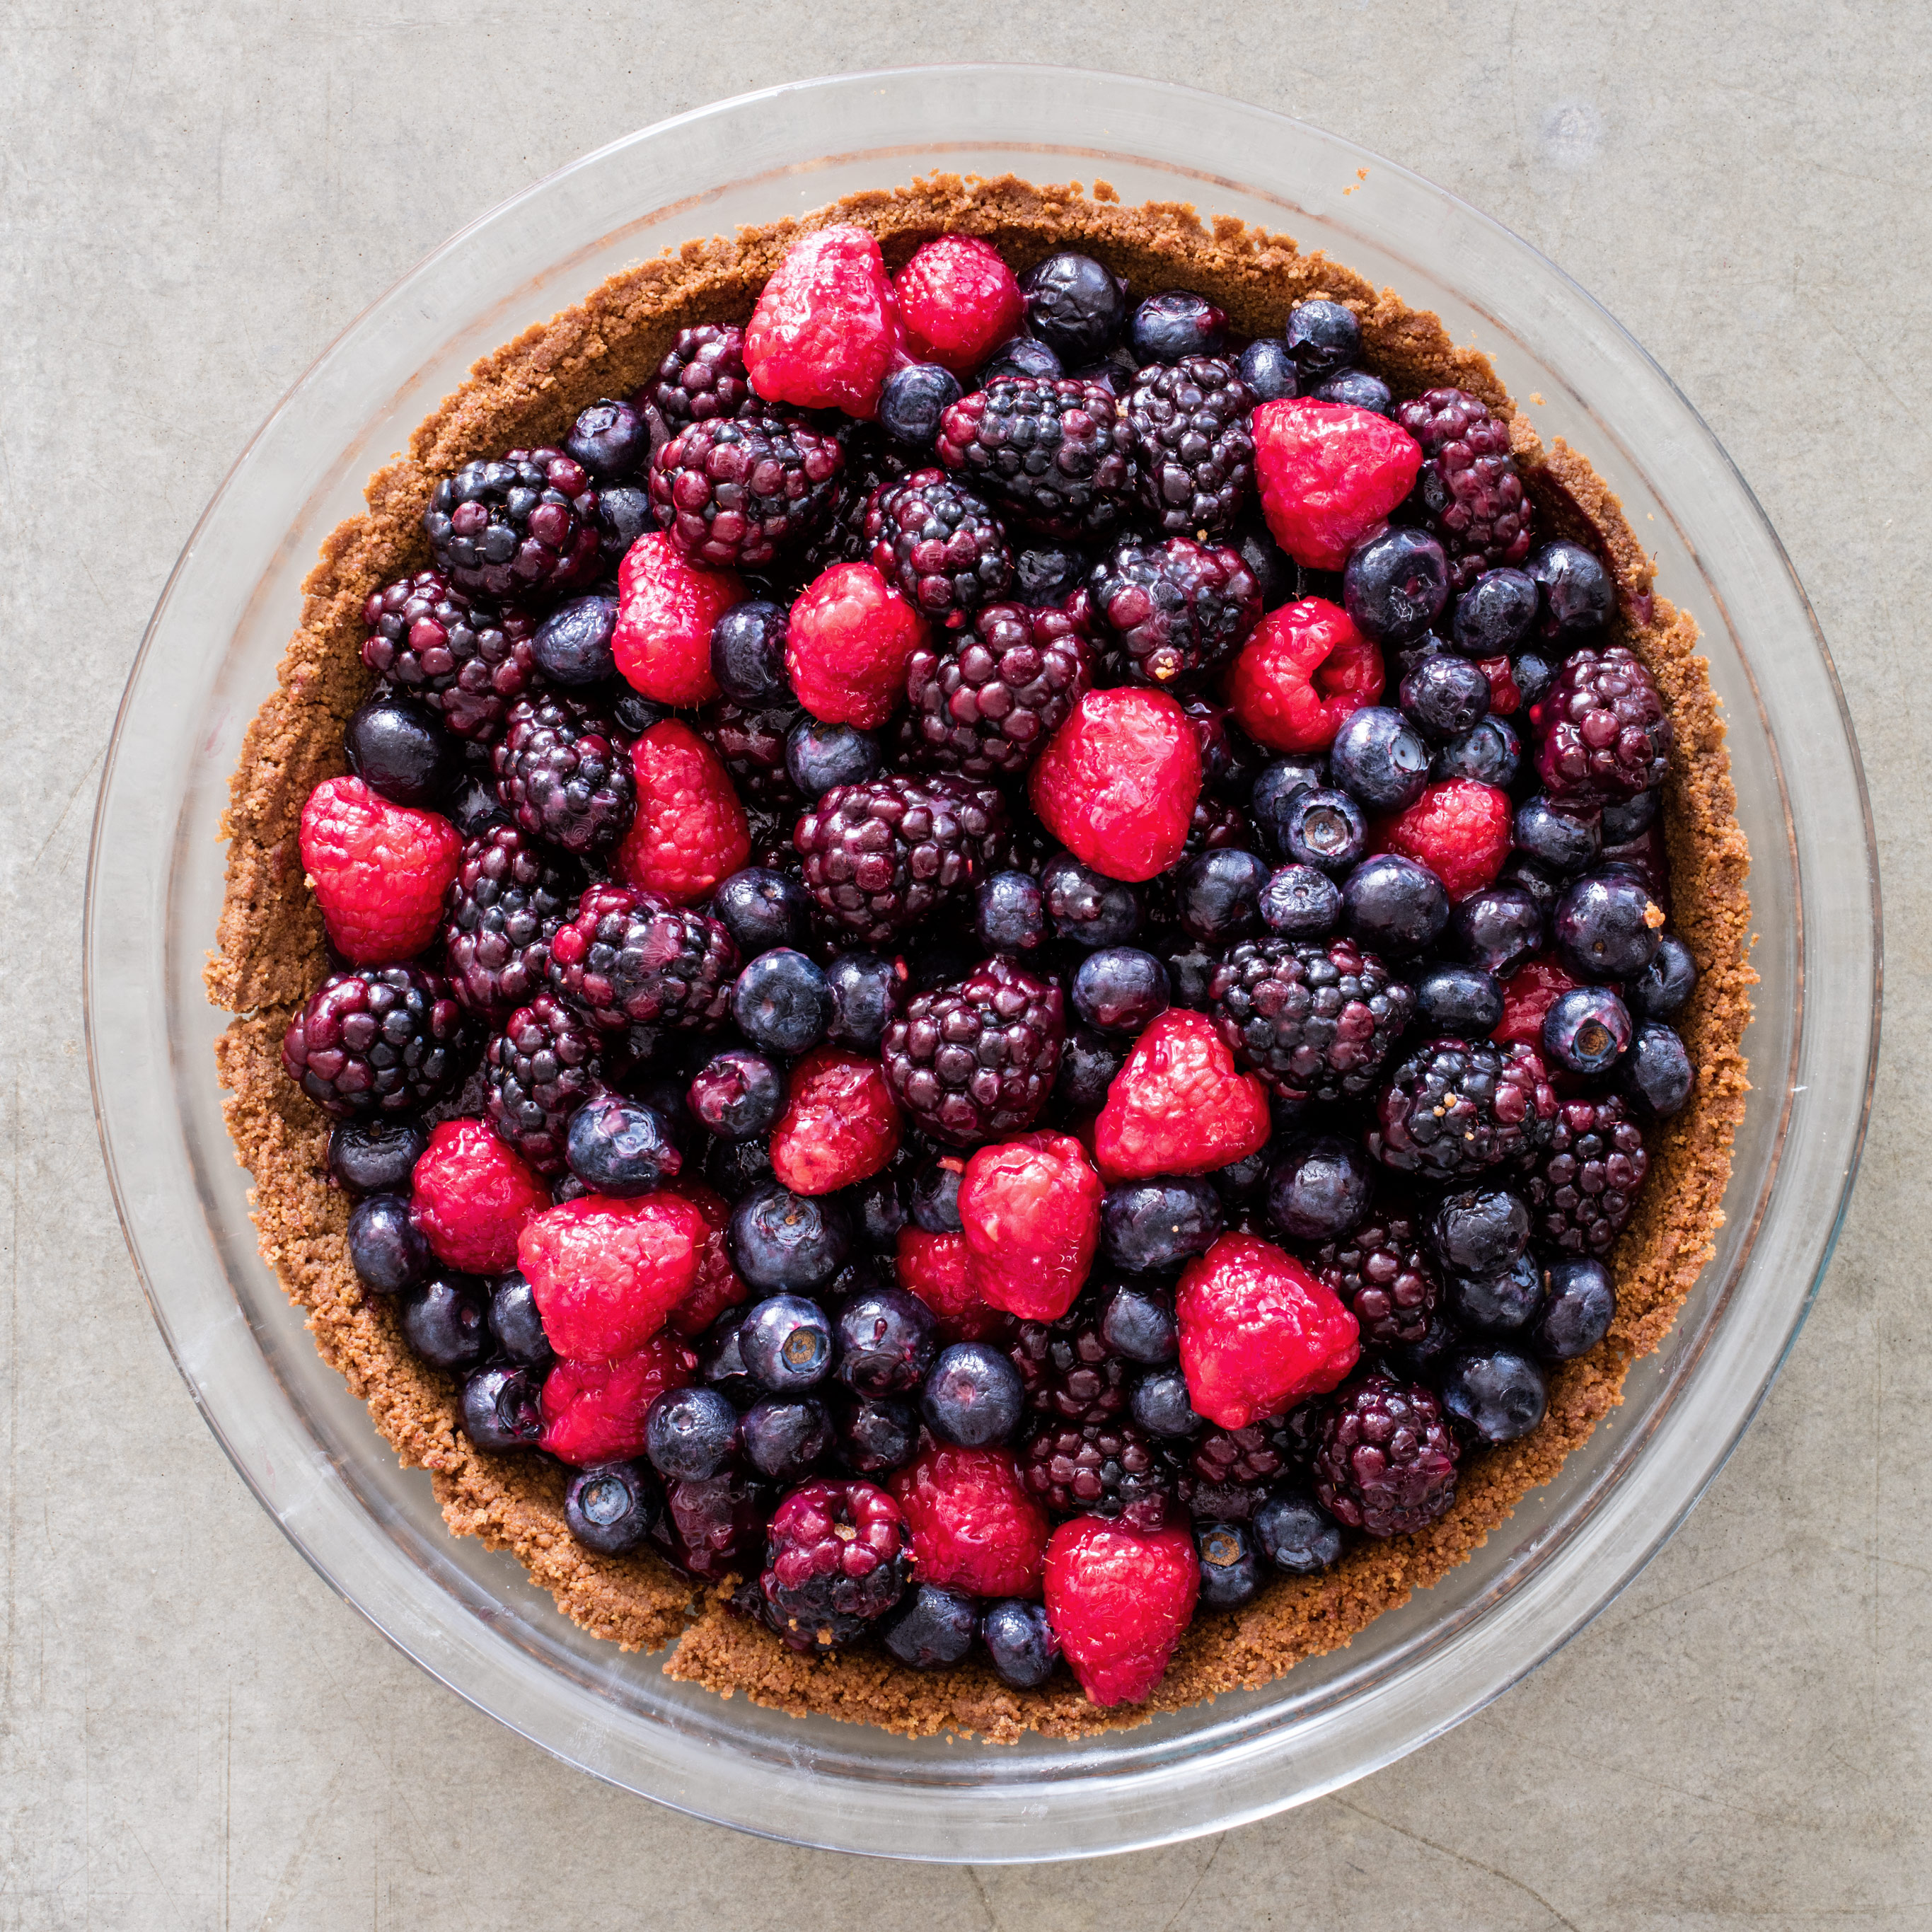 Summer Berry Pie & Baking Pies in Disposable Pie Plates | Cook\u0027s Illustrated